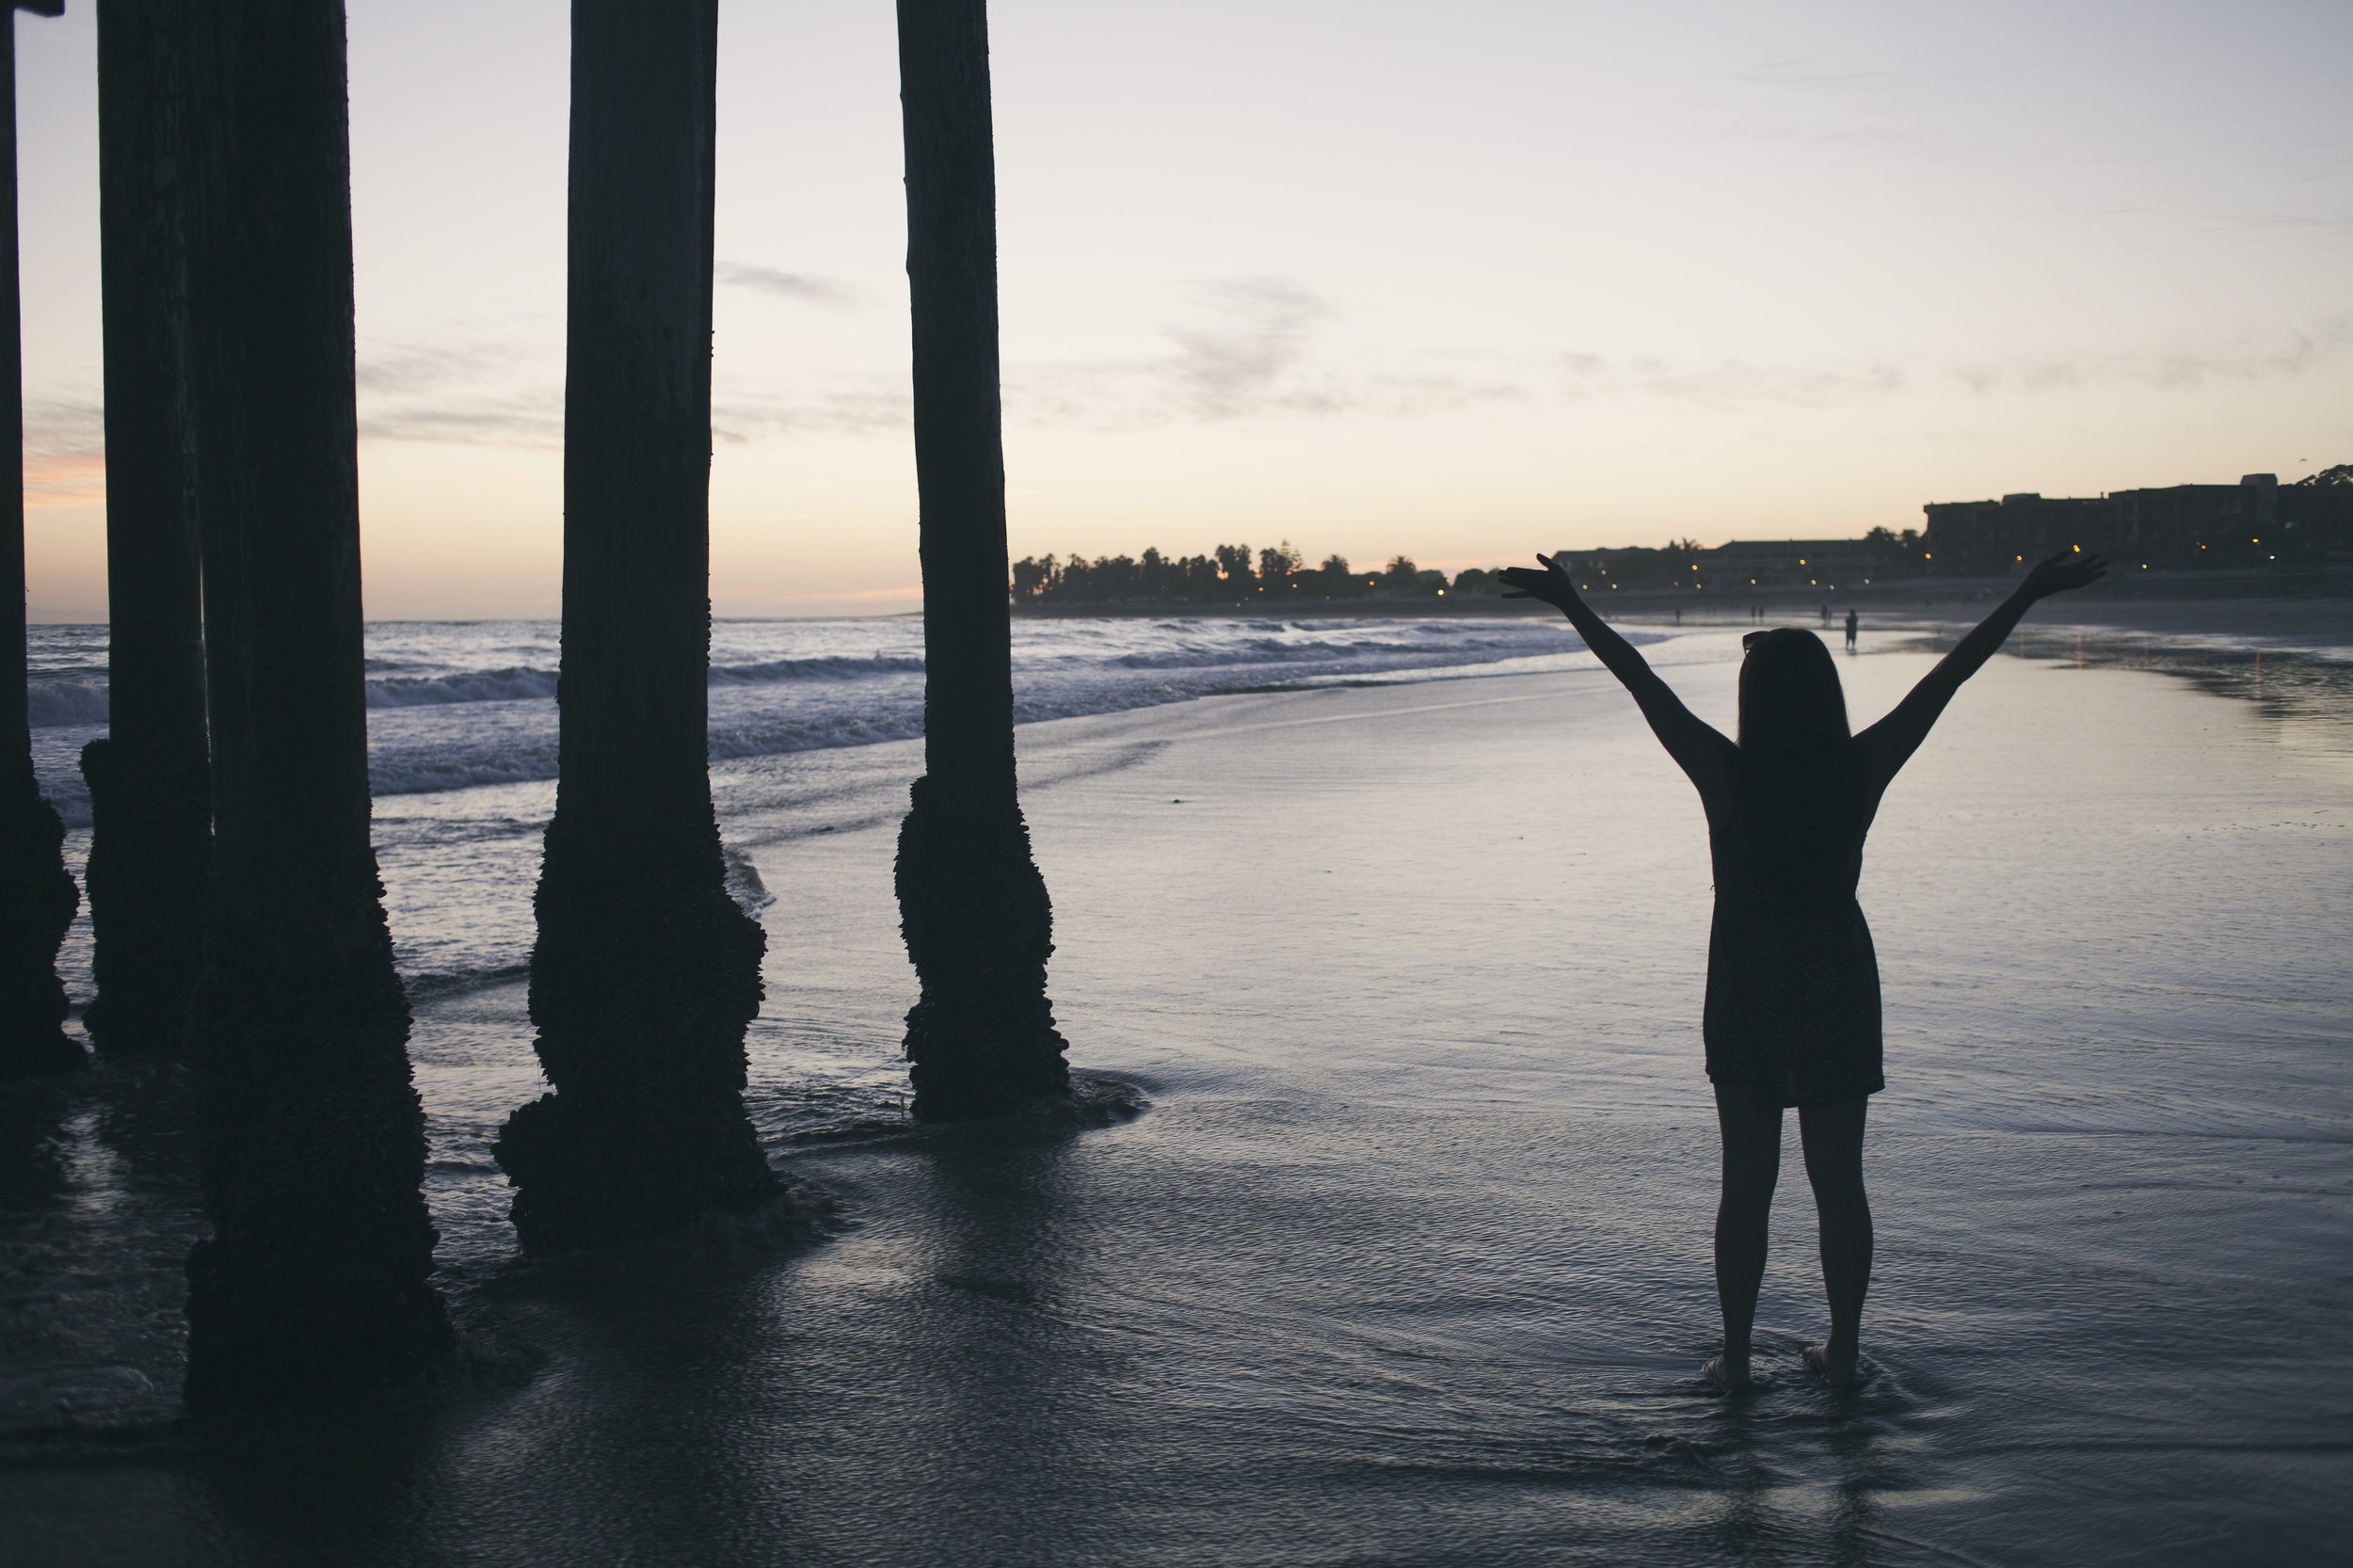 silhouette-of-woman-standing-with-arms-raised-in-the-water.jpg